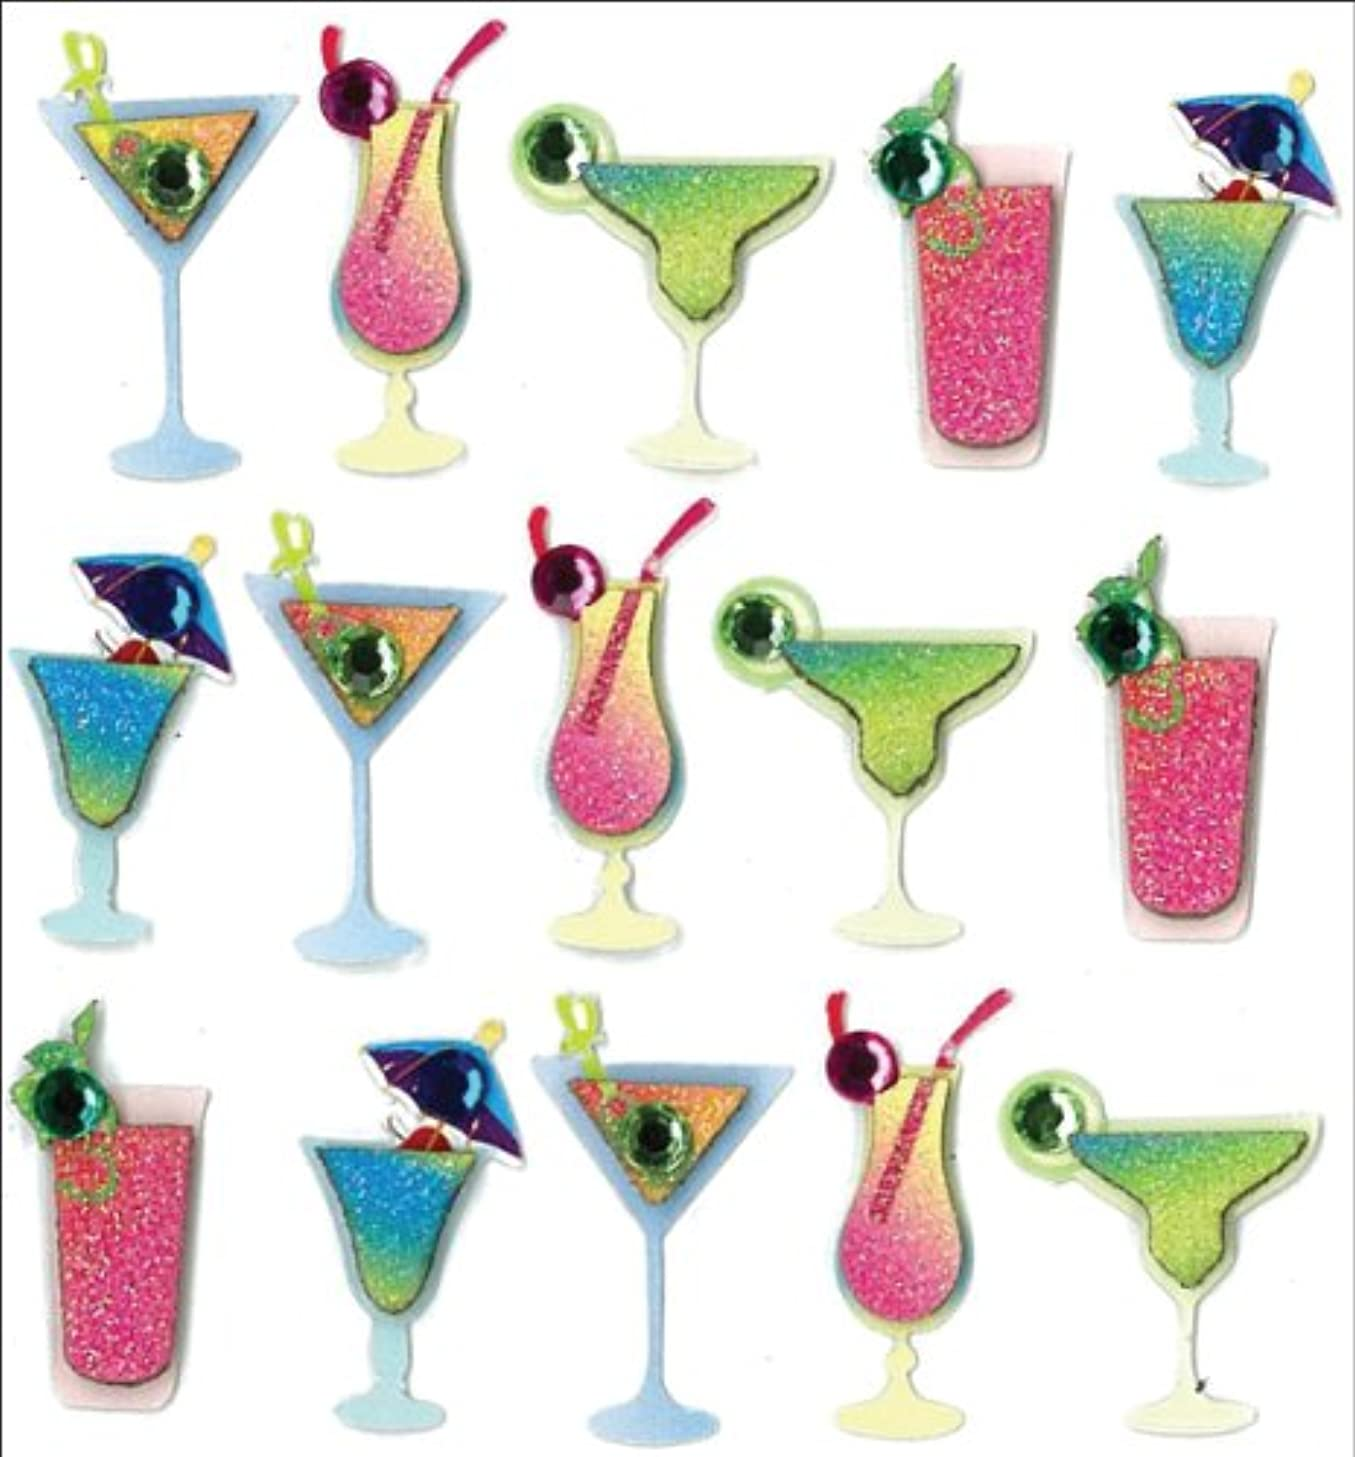 Jolee's Boutique Dimensional Stickers, Drinks